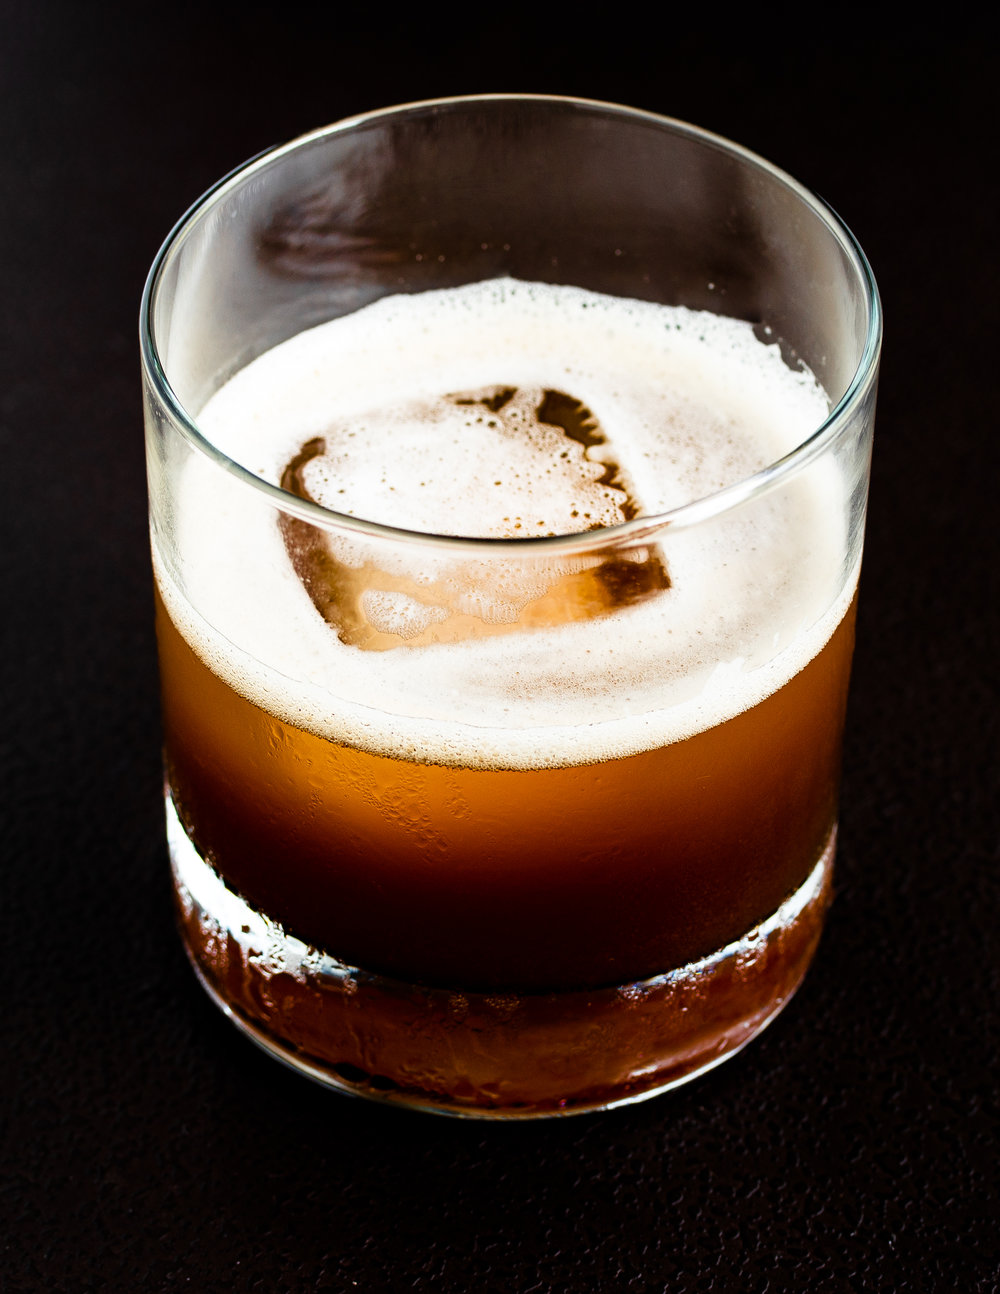 Slow Drip Old Fashioned